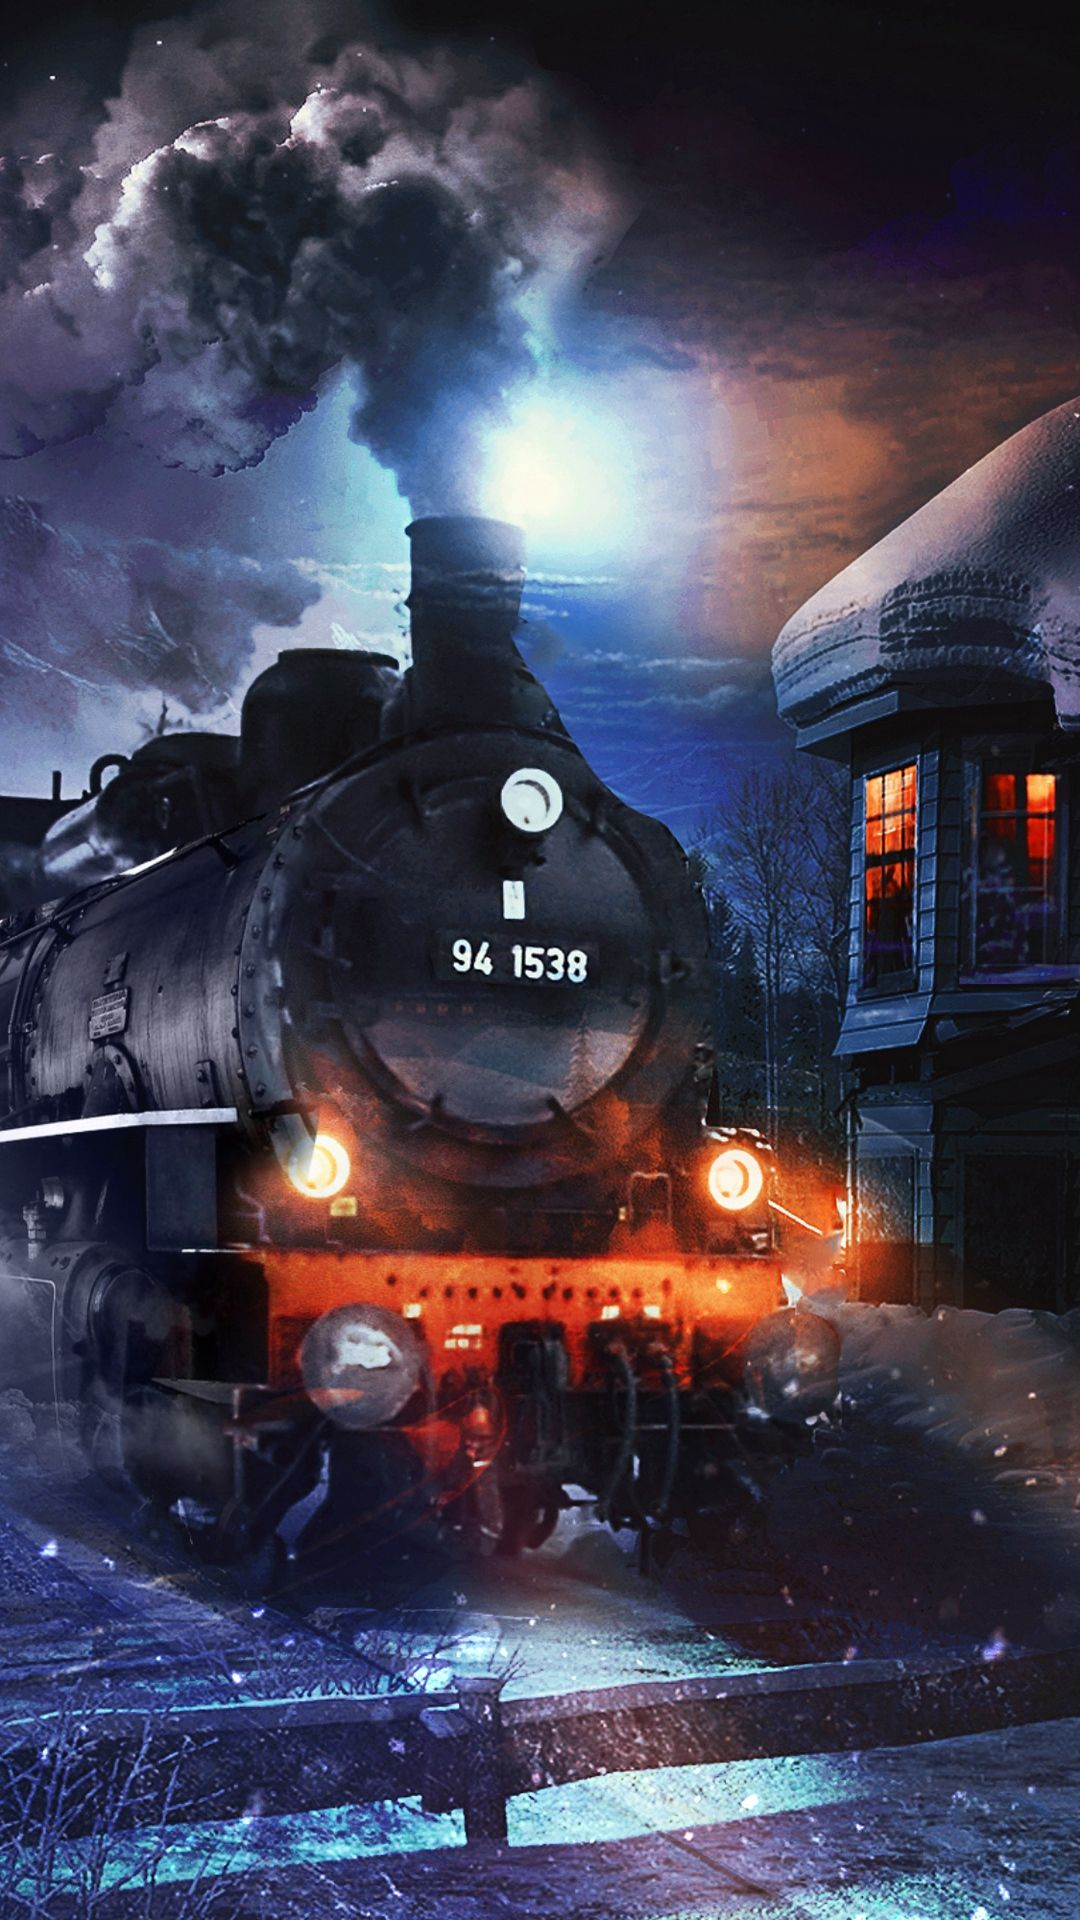 Pin by Eva 814 on Trains Harry potter wallpaper, Harry